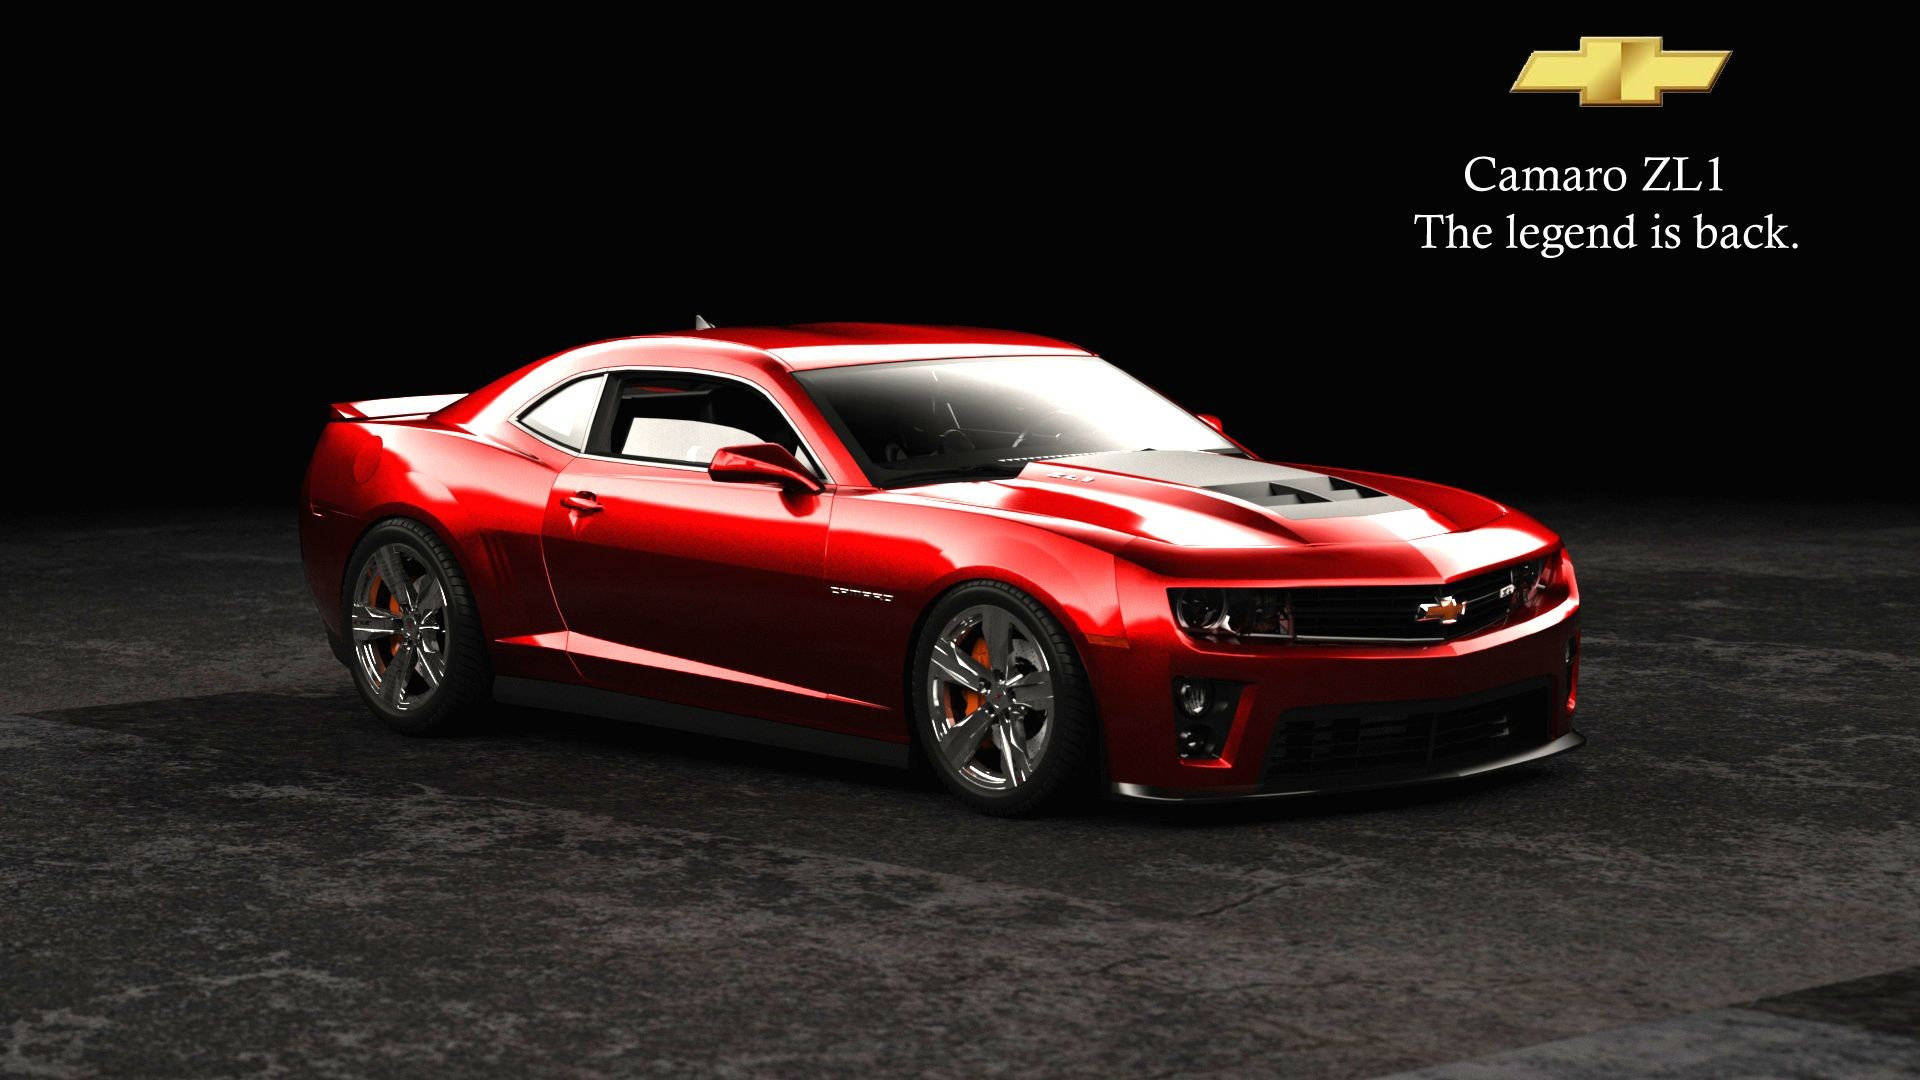 Res: 1920x1080, Discover ideas about Camaro Zl1